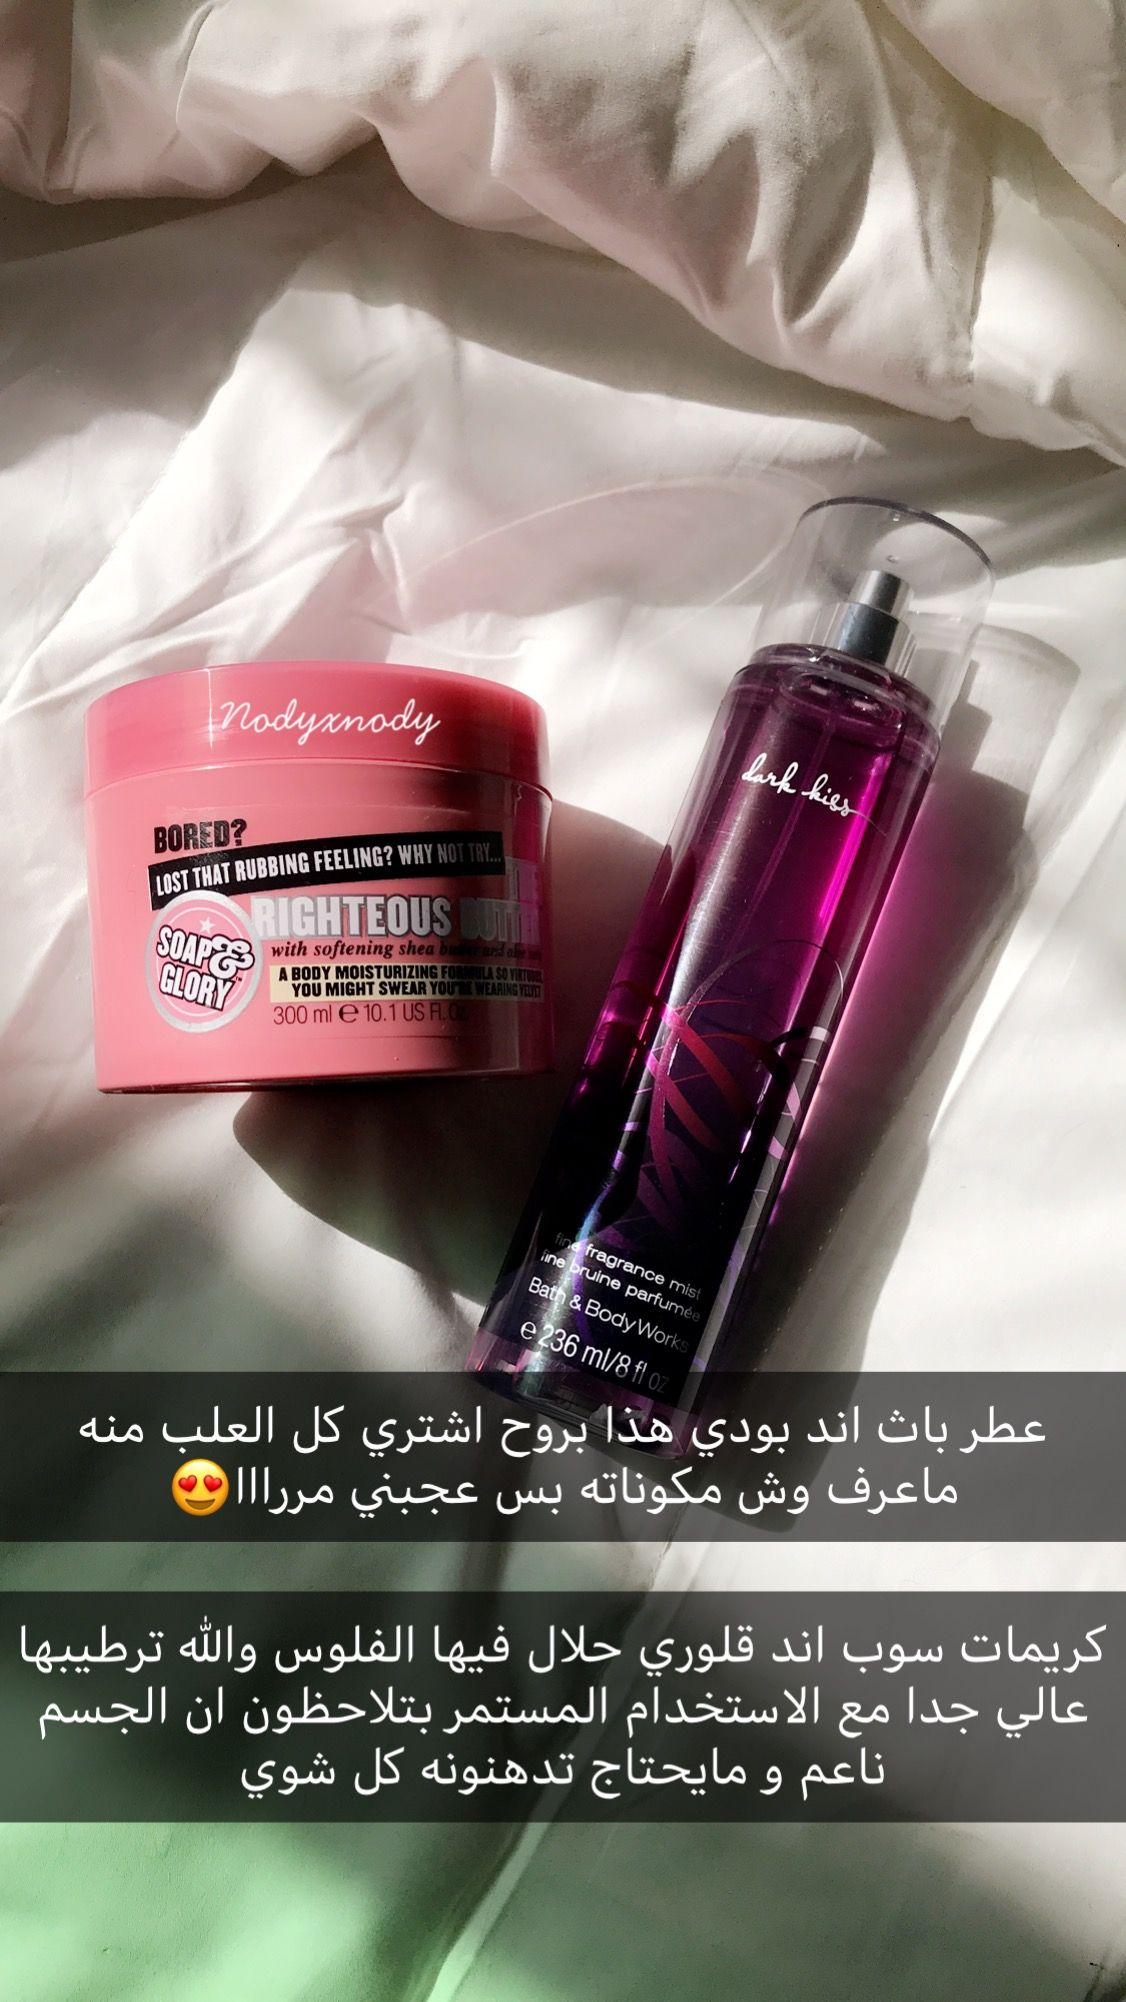 Pin By نوديتا Noodyta On سناب نوديتا Beauty Skin Care Routine Facial Skin Care Routine Body Skin Care